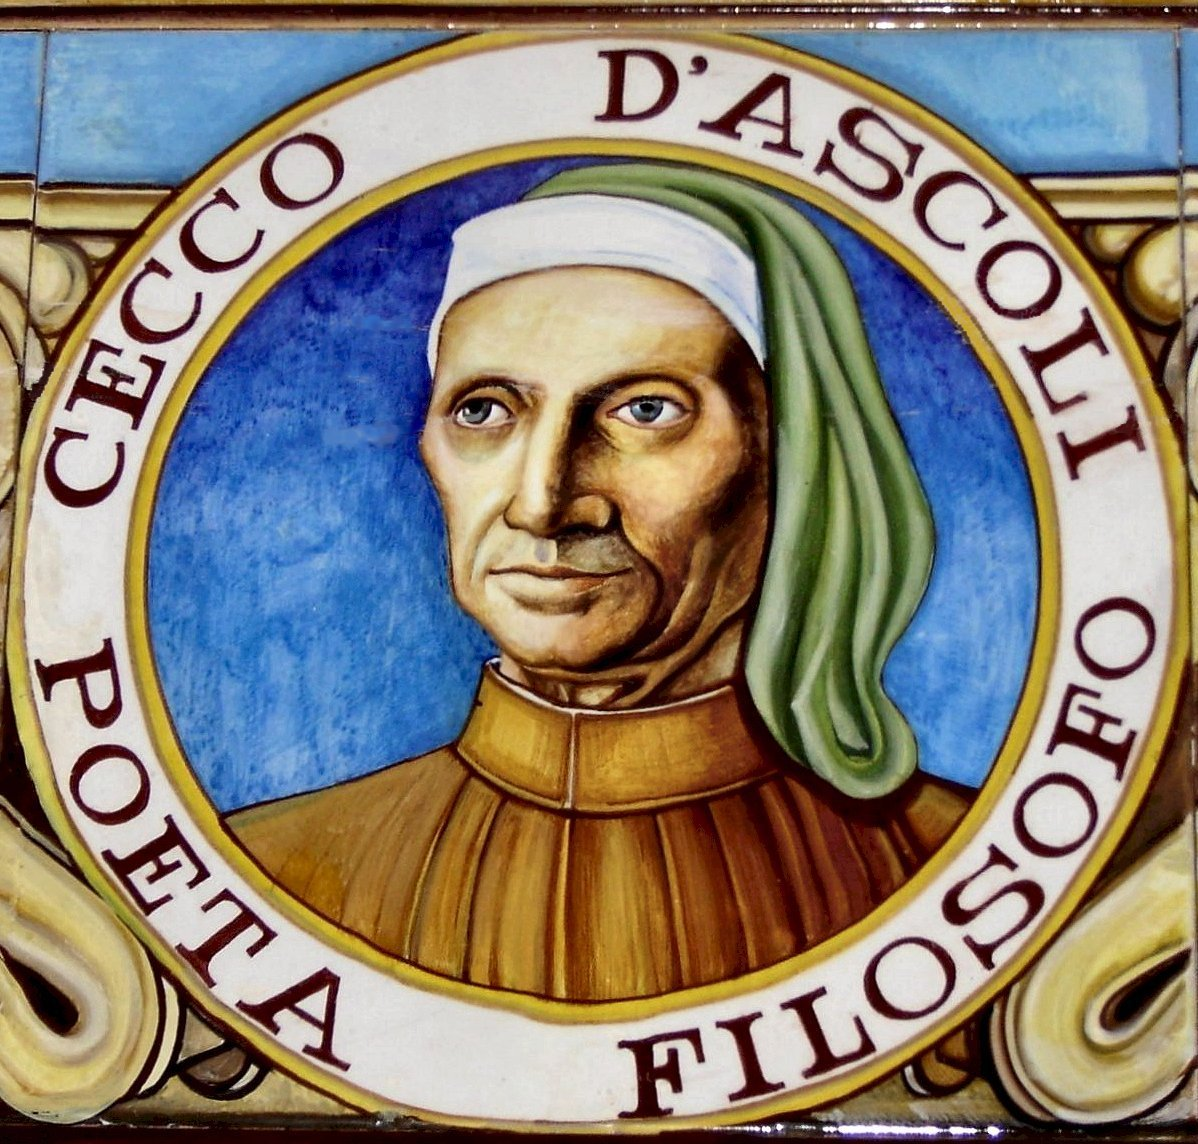 Cecco D'Ascoli and Church Discipline of Natural Philosophers in the Middle Ages